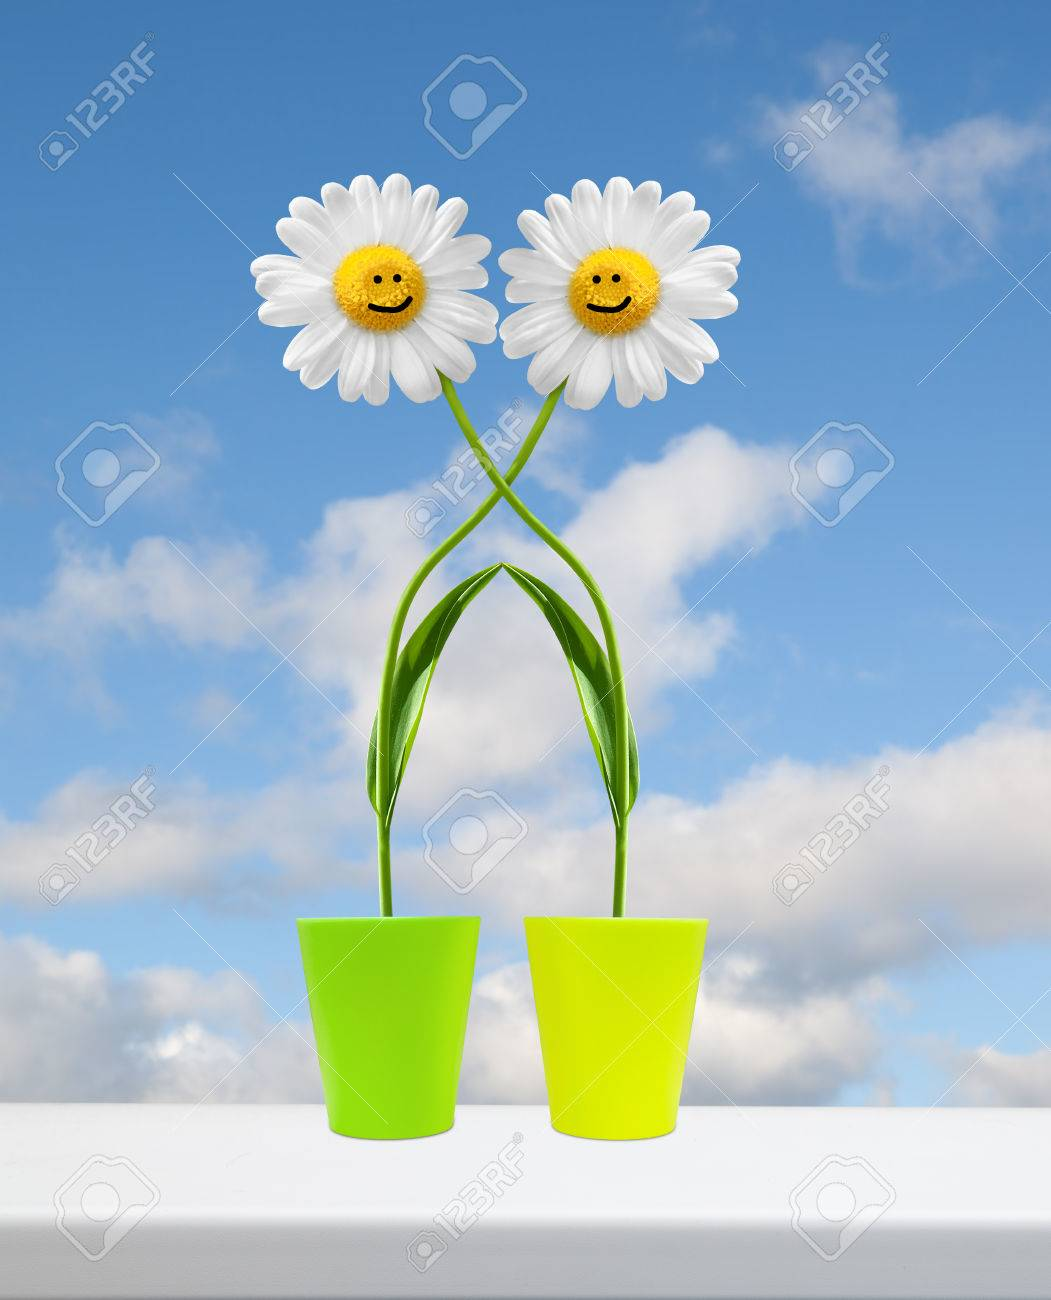 Two embracing flowers on the window sill Stock Photo - 24929705